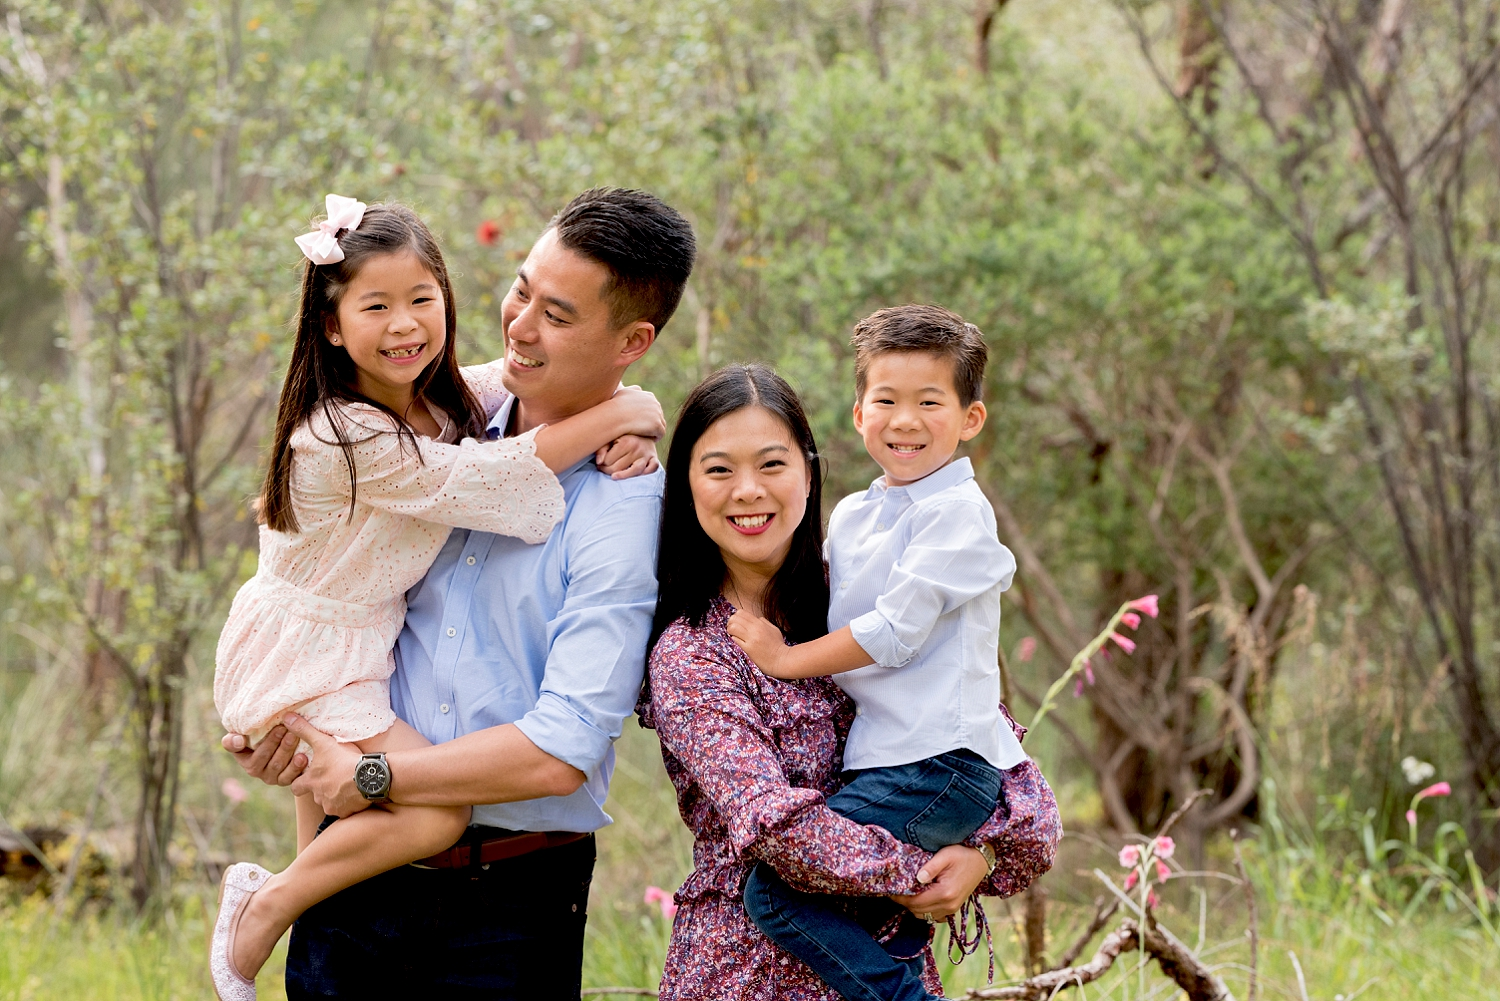 perth family photographer 01.jpg